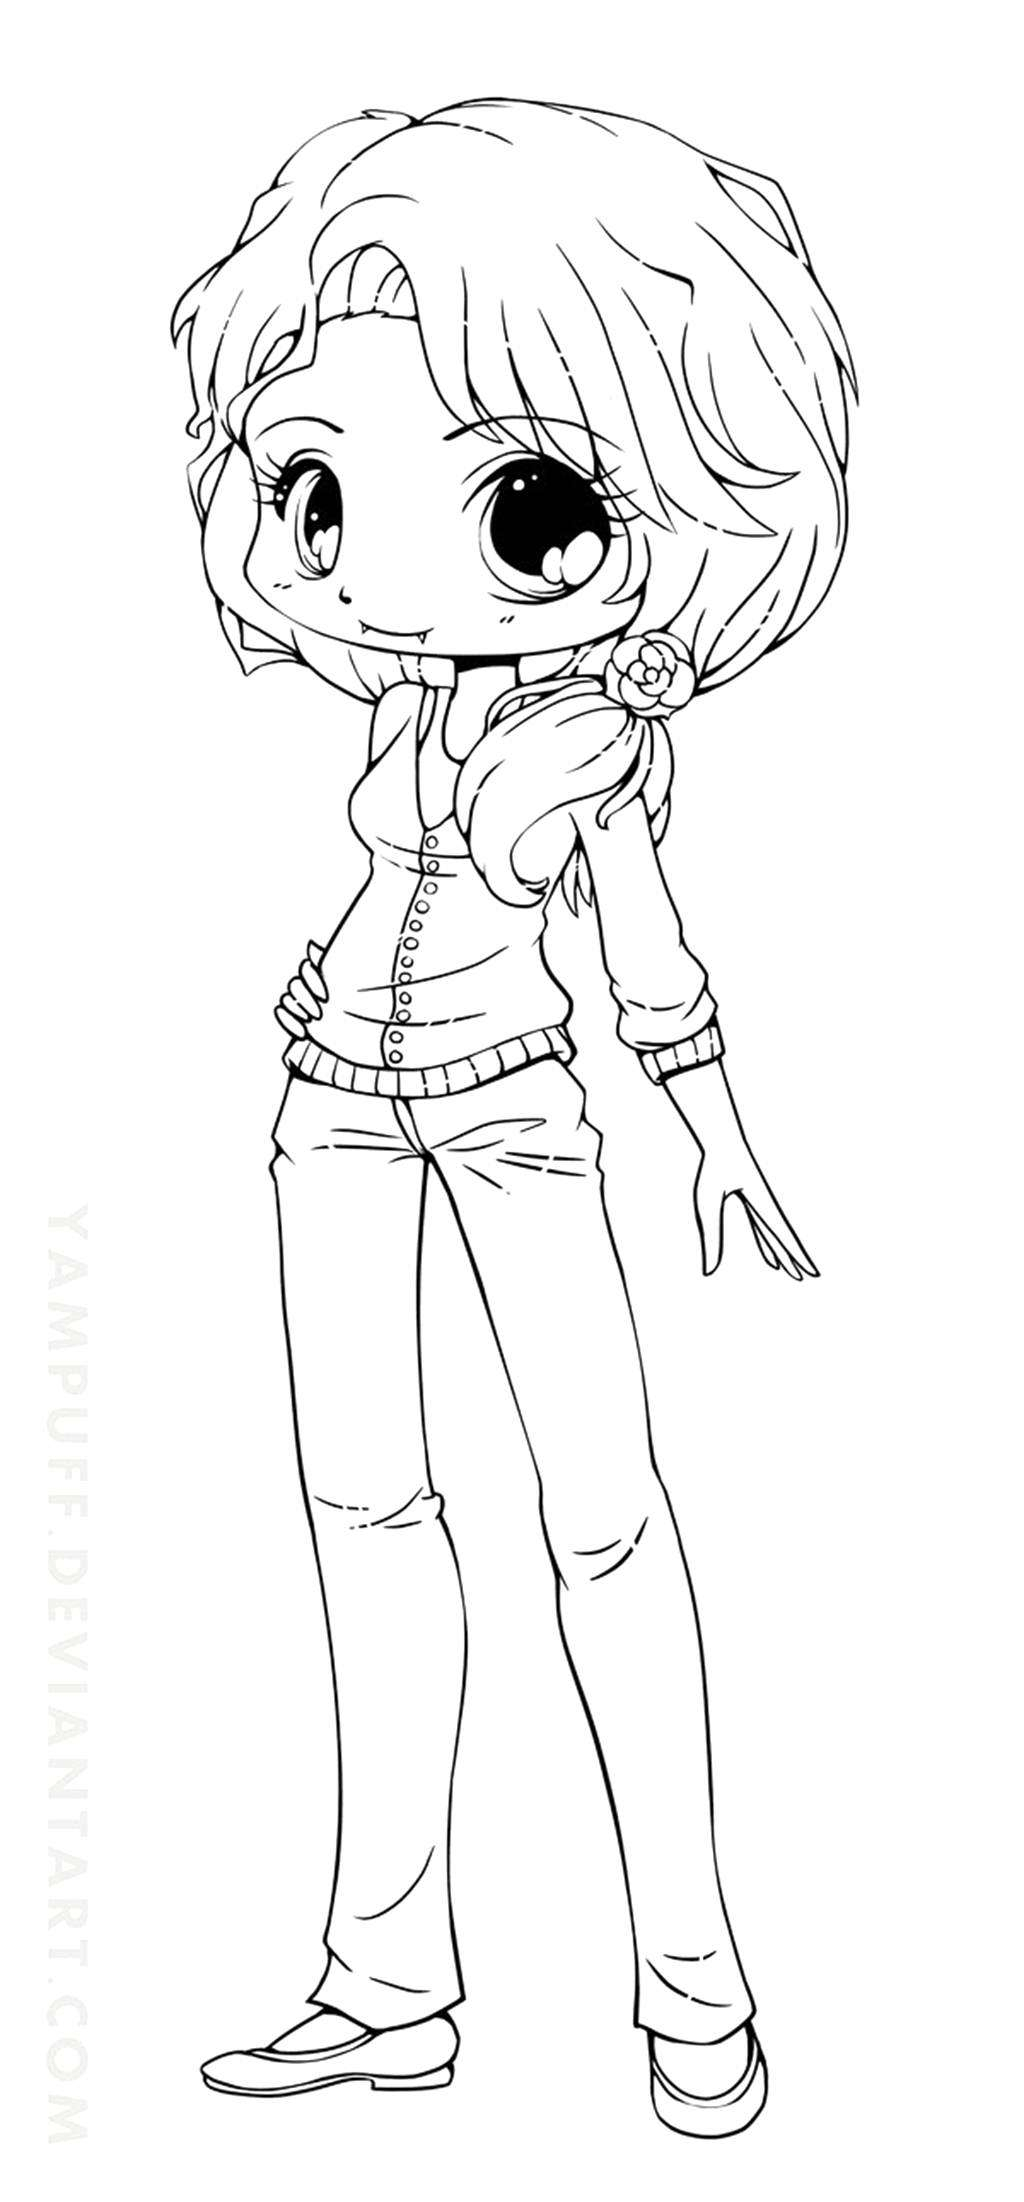 cute chibi girl coloring pages 28 collection of kawaii wolf girl coloring pages high cute chibi coloring pages girl